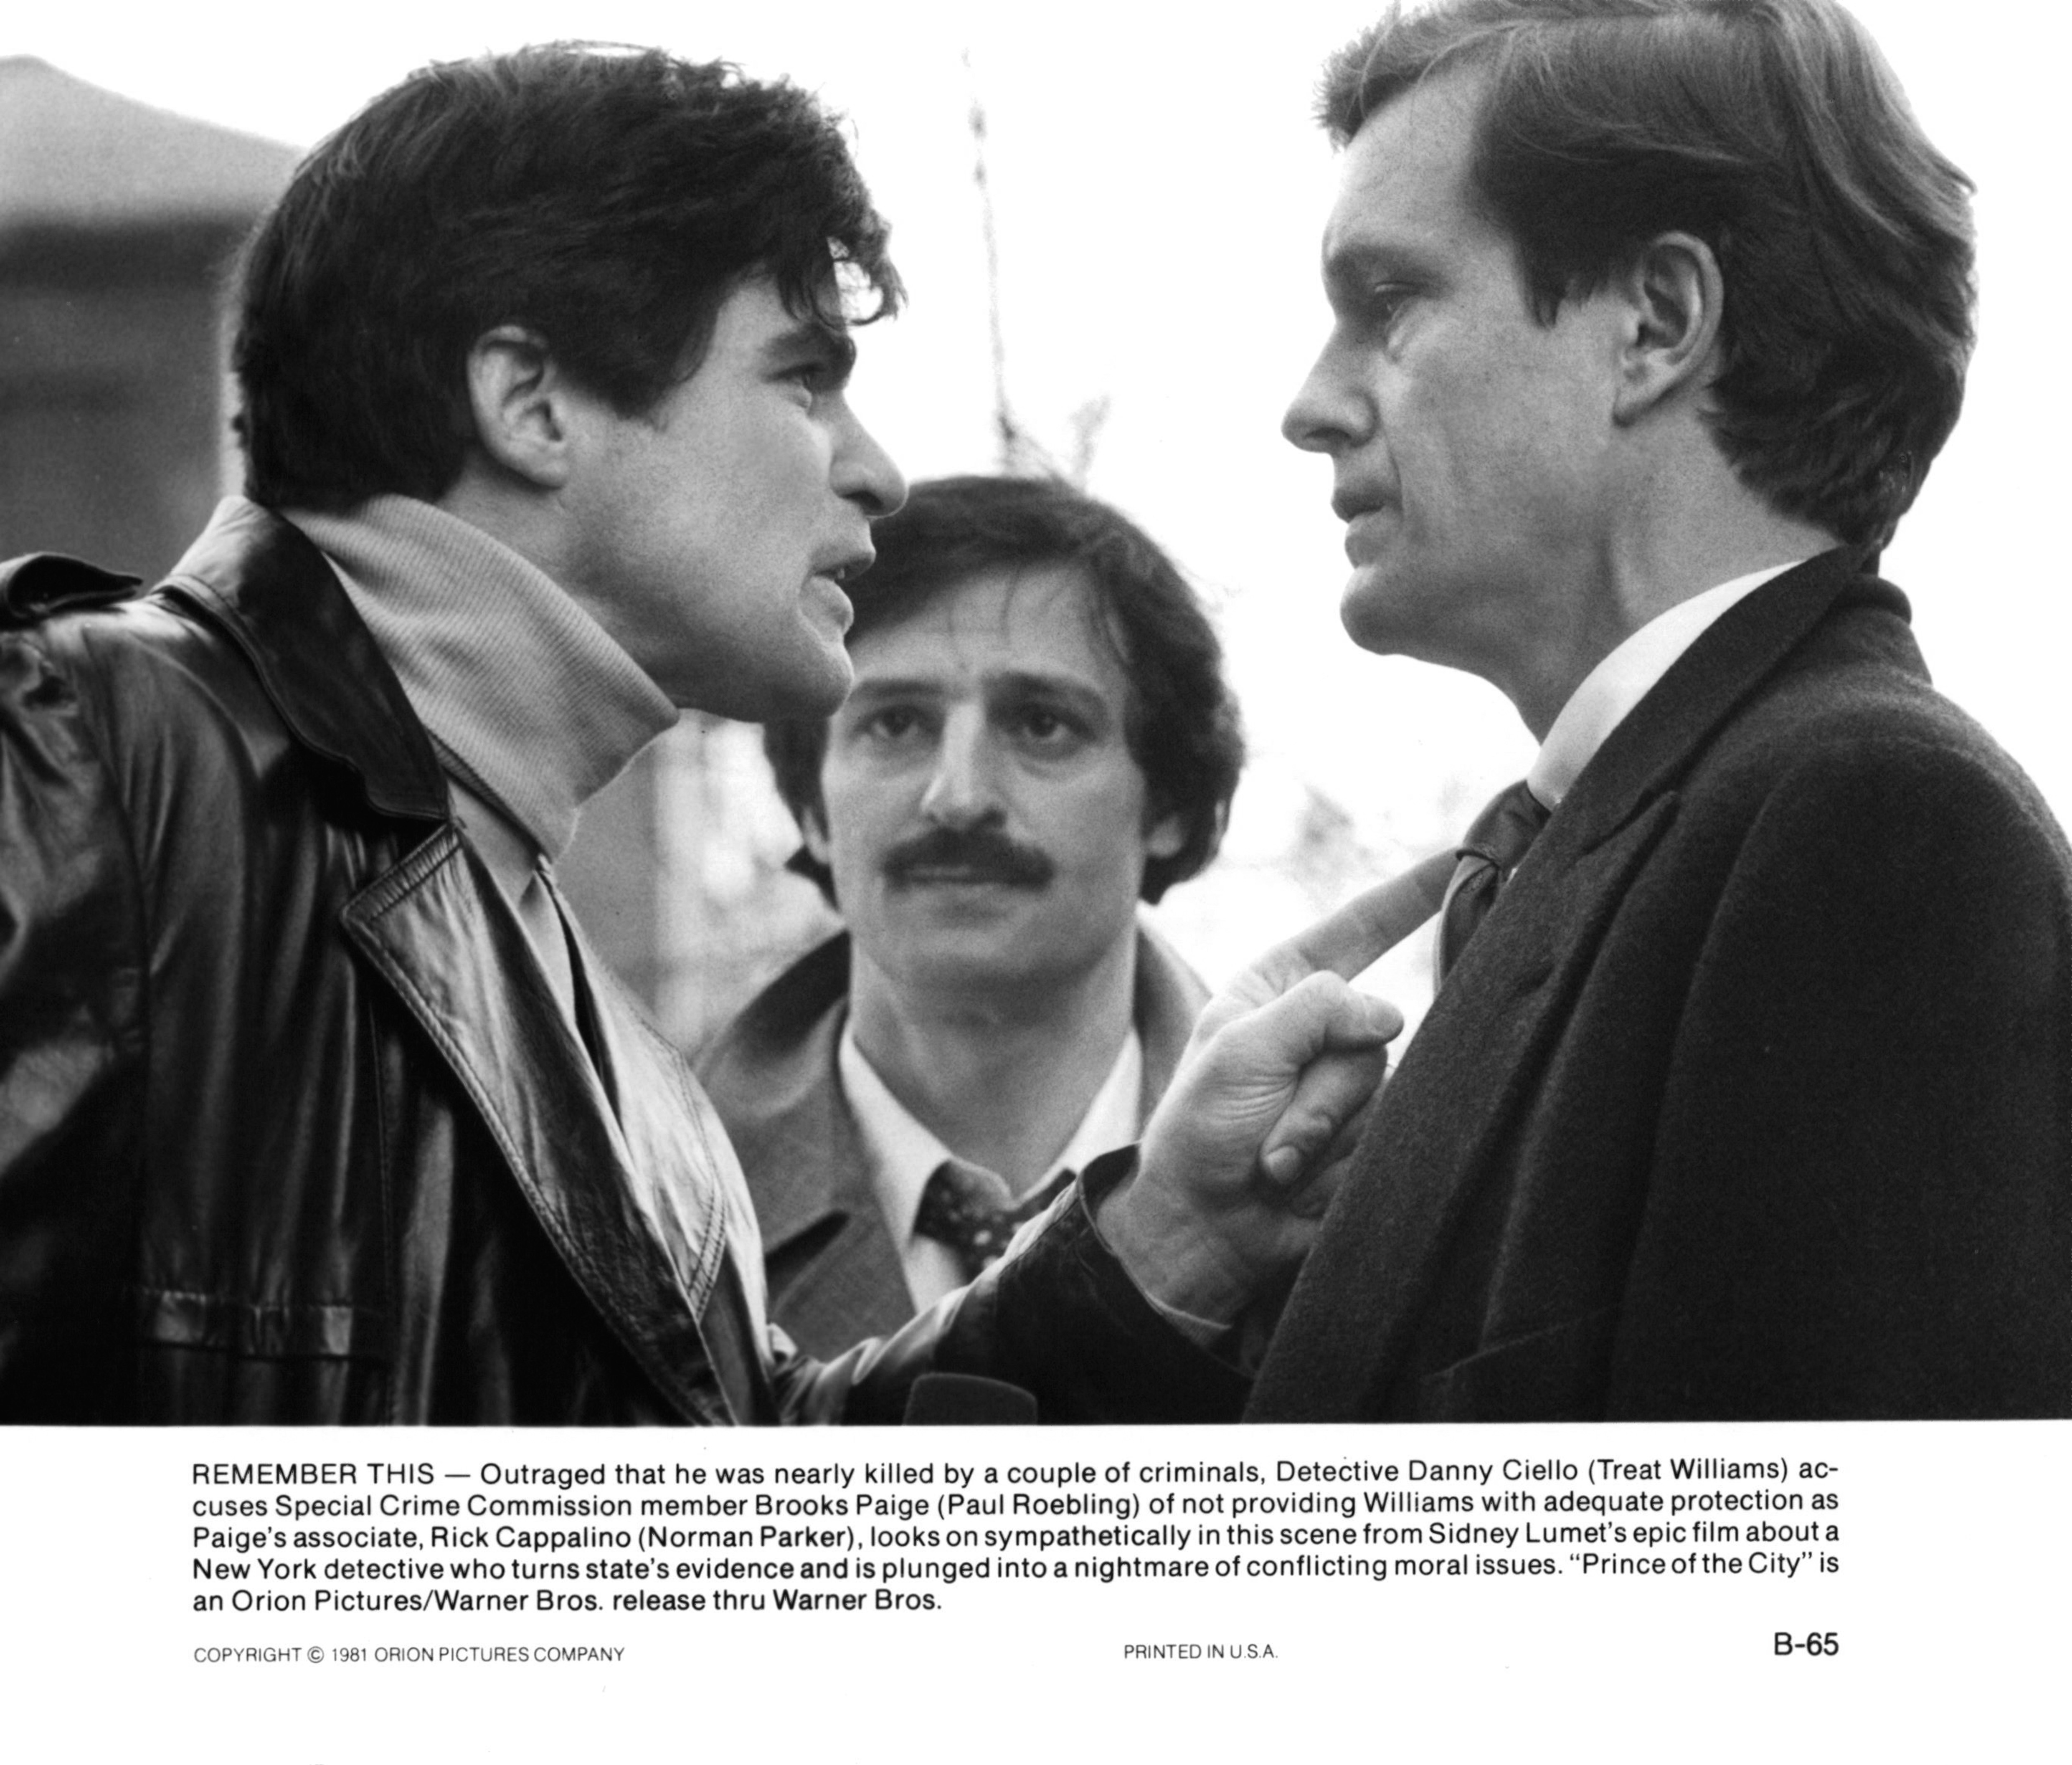 Treat Williams, Norman Parker, and Paul Roebling in Prince of the City (1981)